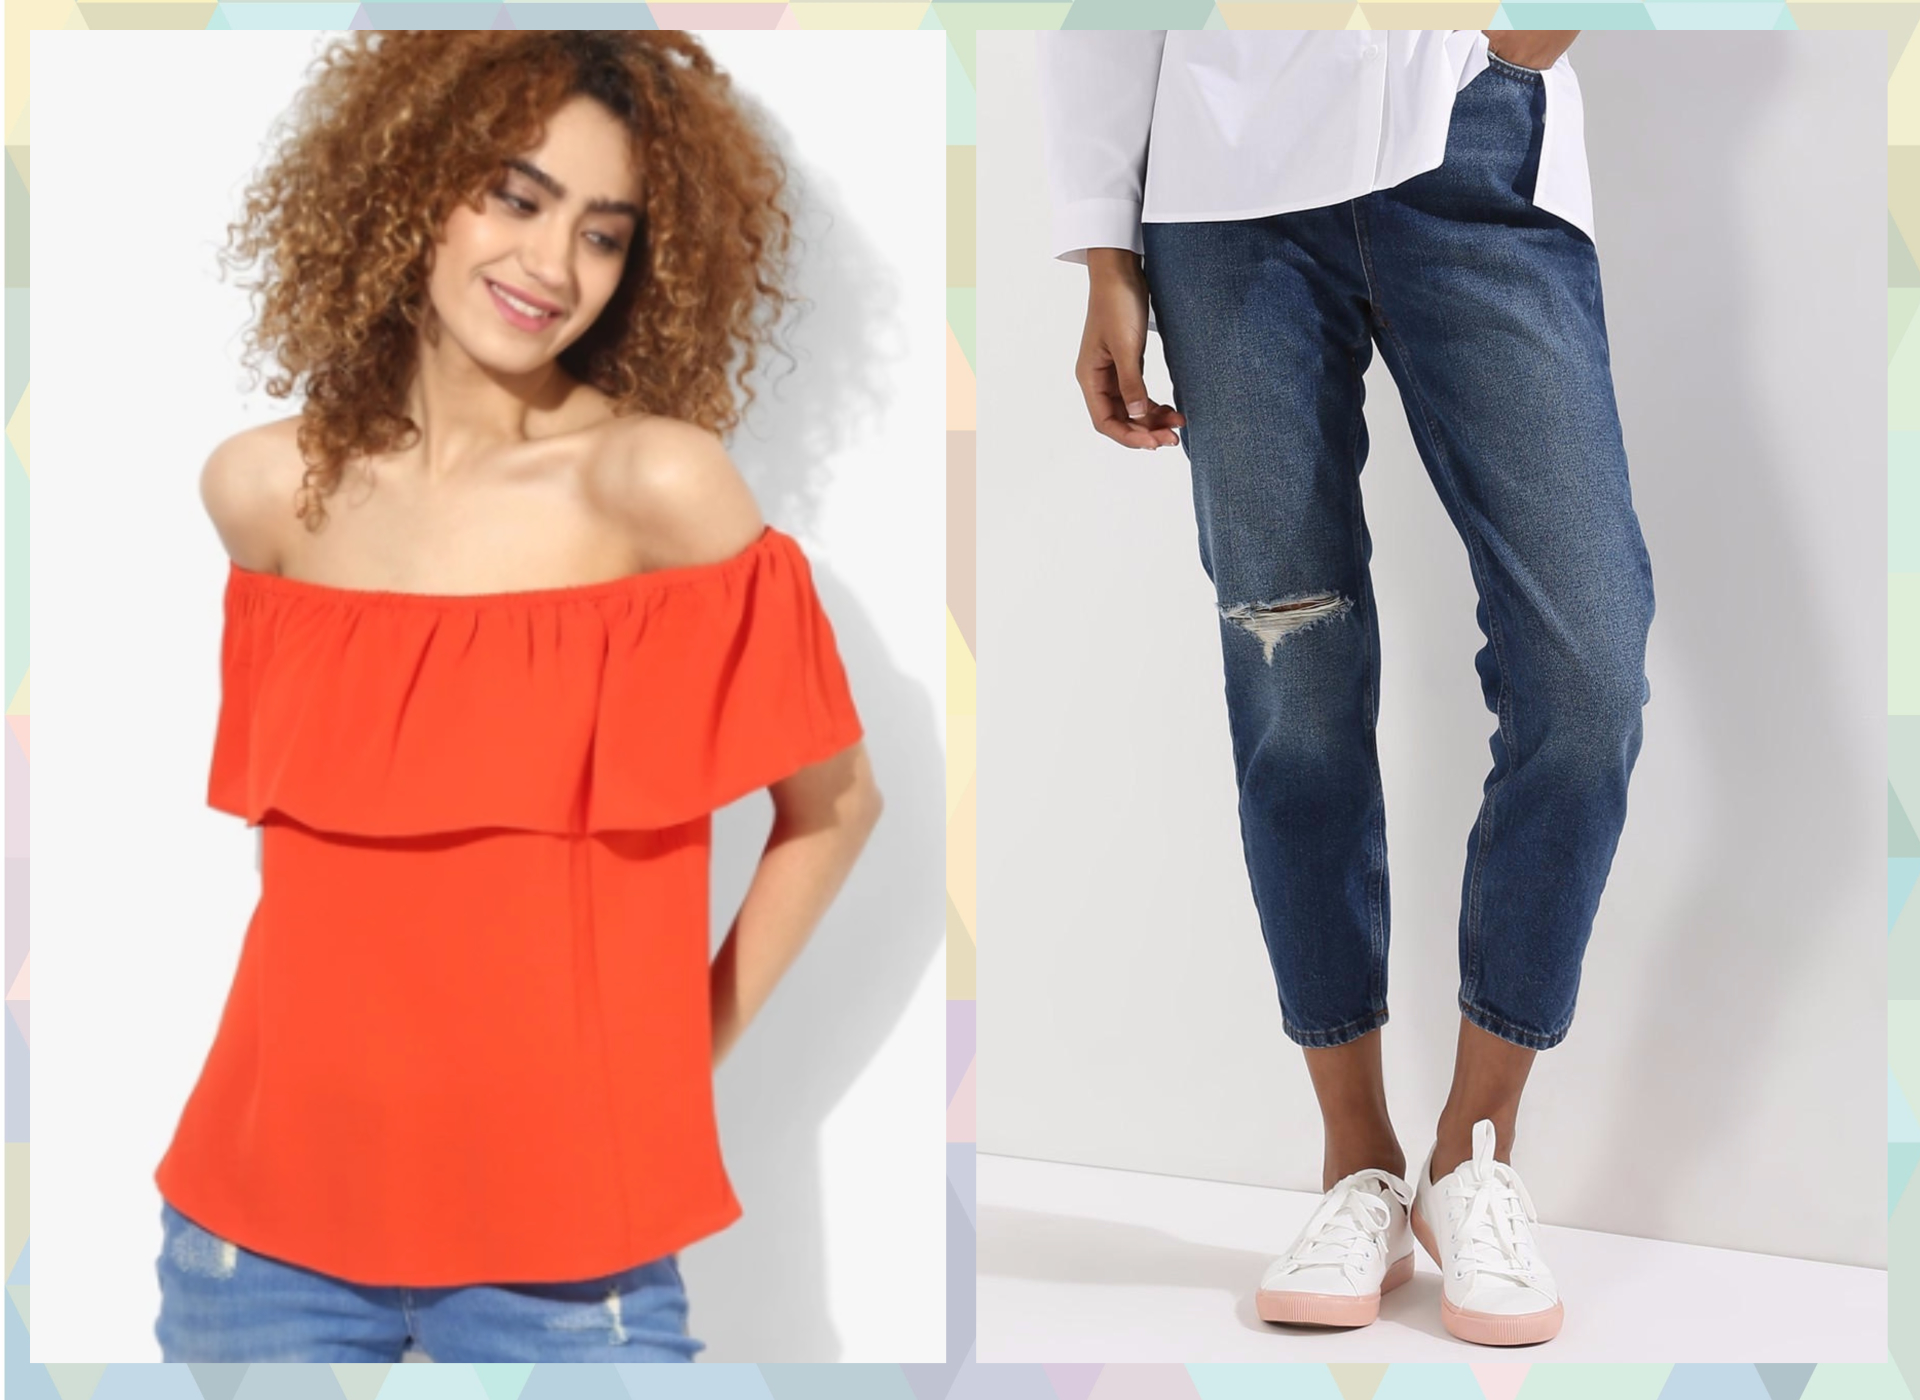 4-outfits for when you are on your period-Mom jeans all the way!